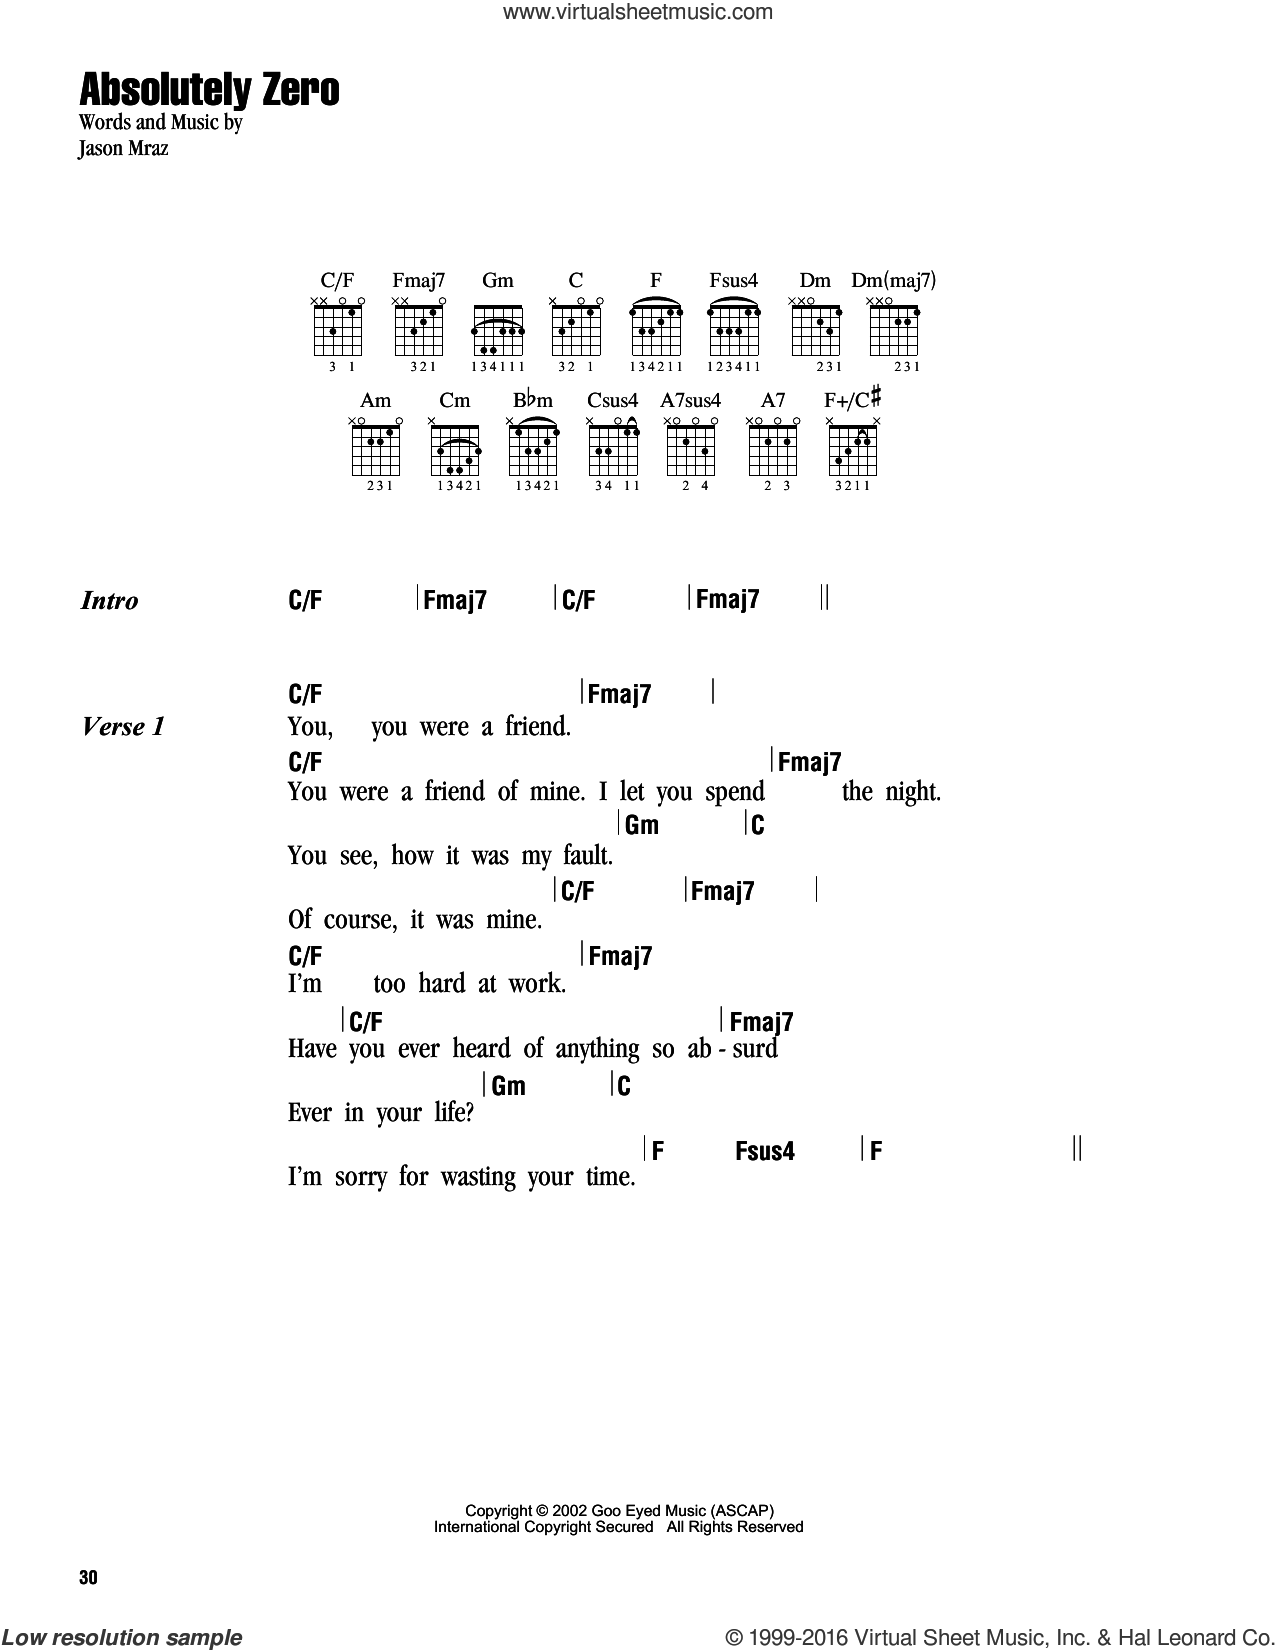 Absolutely Zero sheet music for guitar (chords) by Jason Mraz. Score Image Preview.